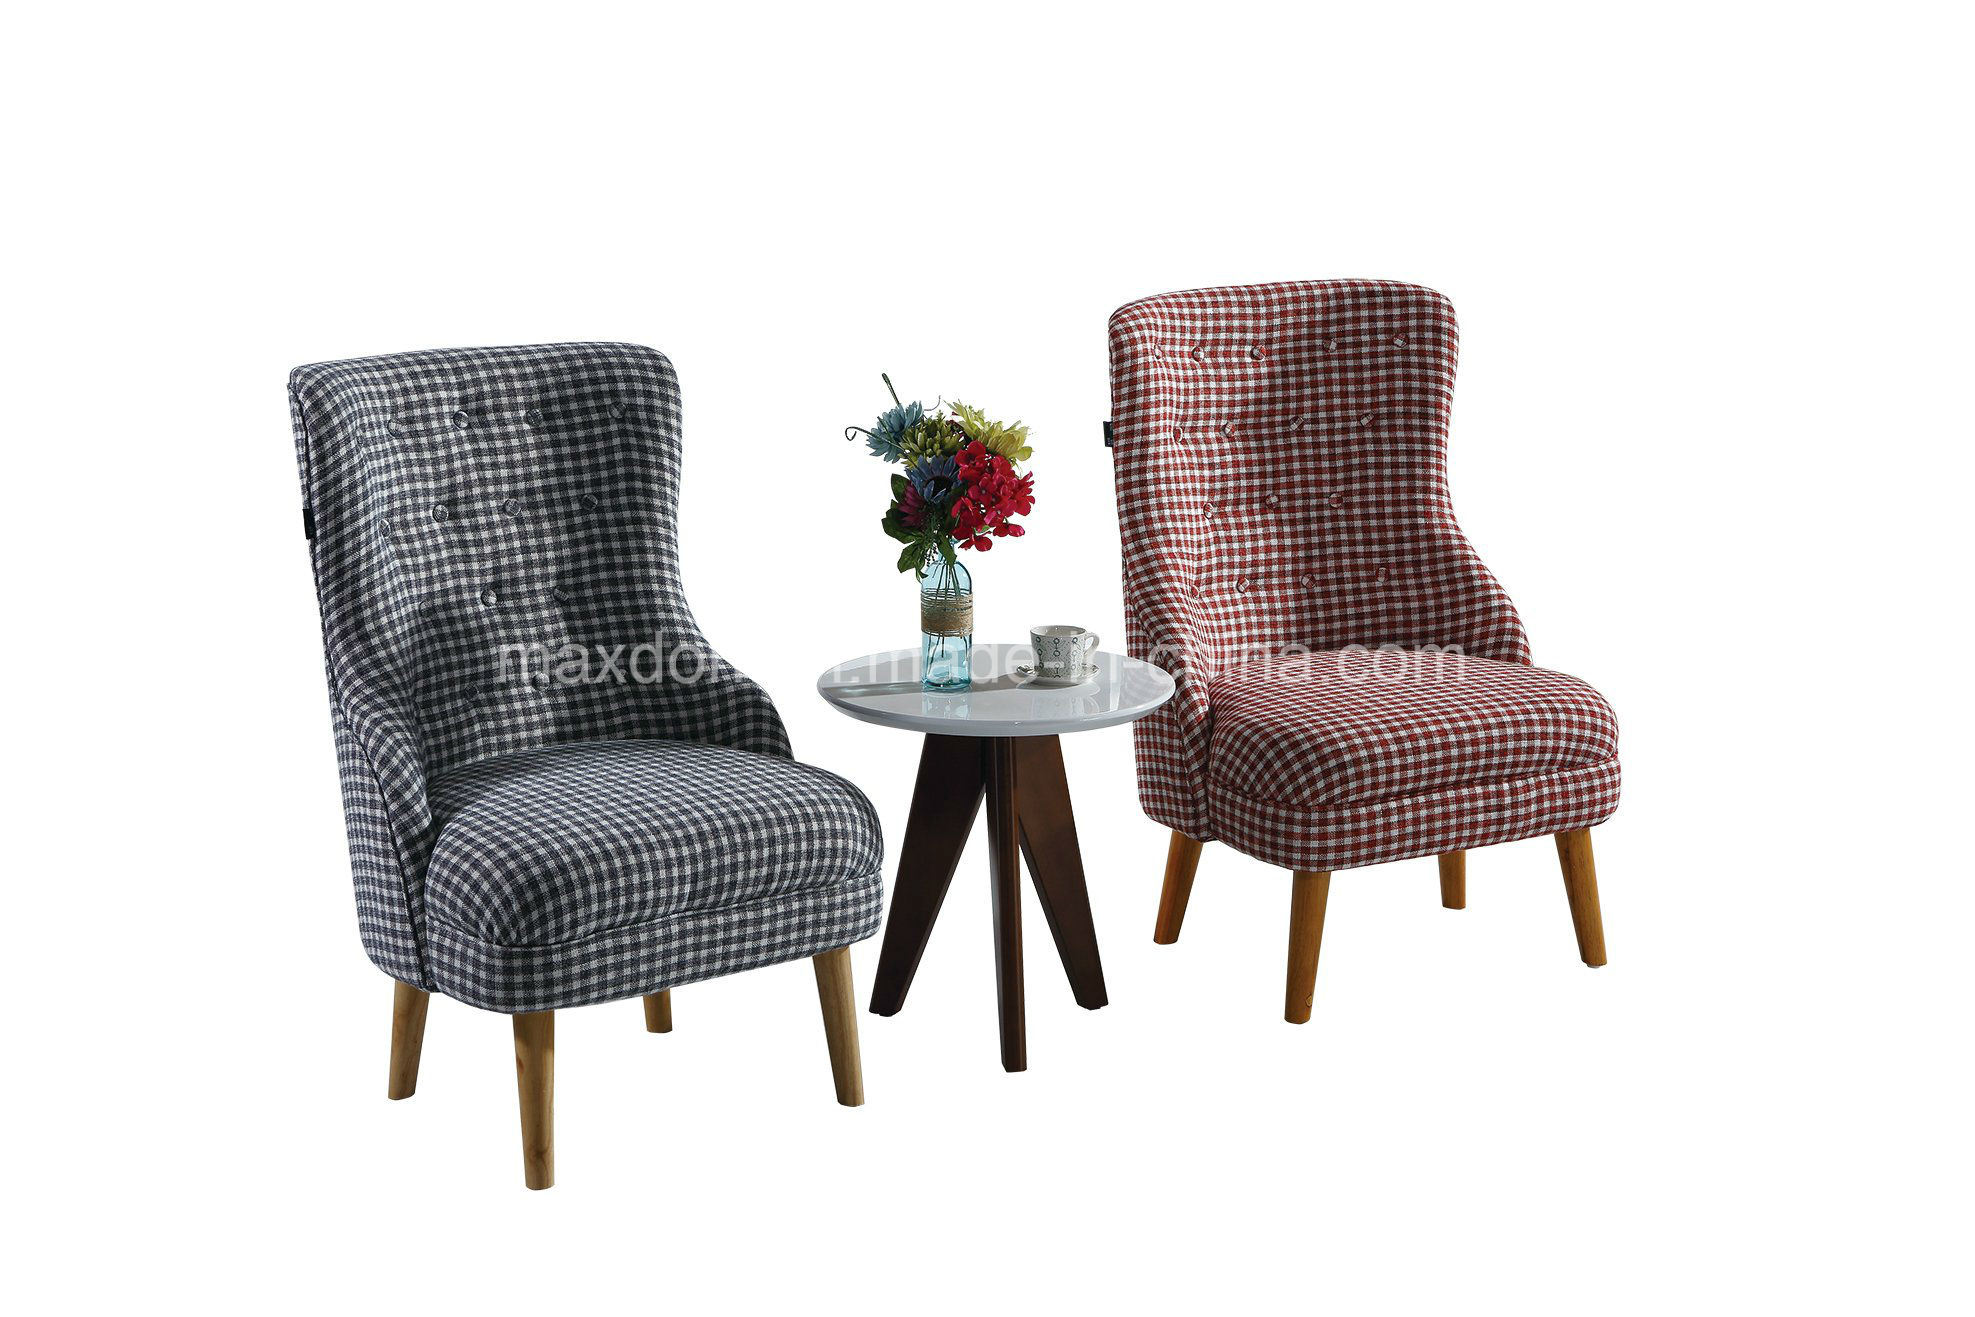 China Tv Chair Hotel Armrest Chair Leisure Chair Lounge